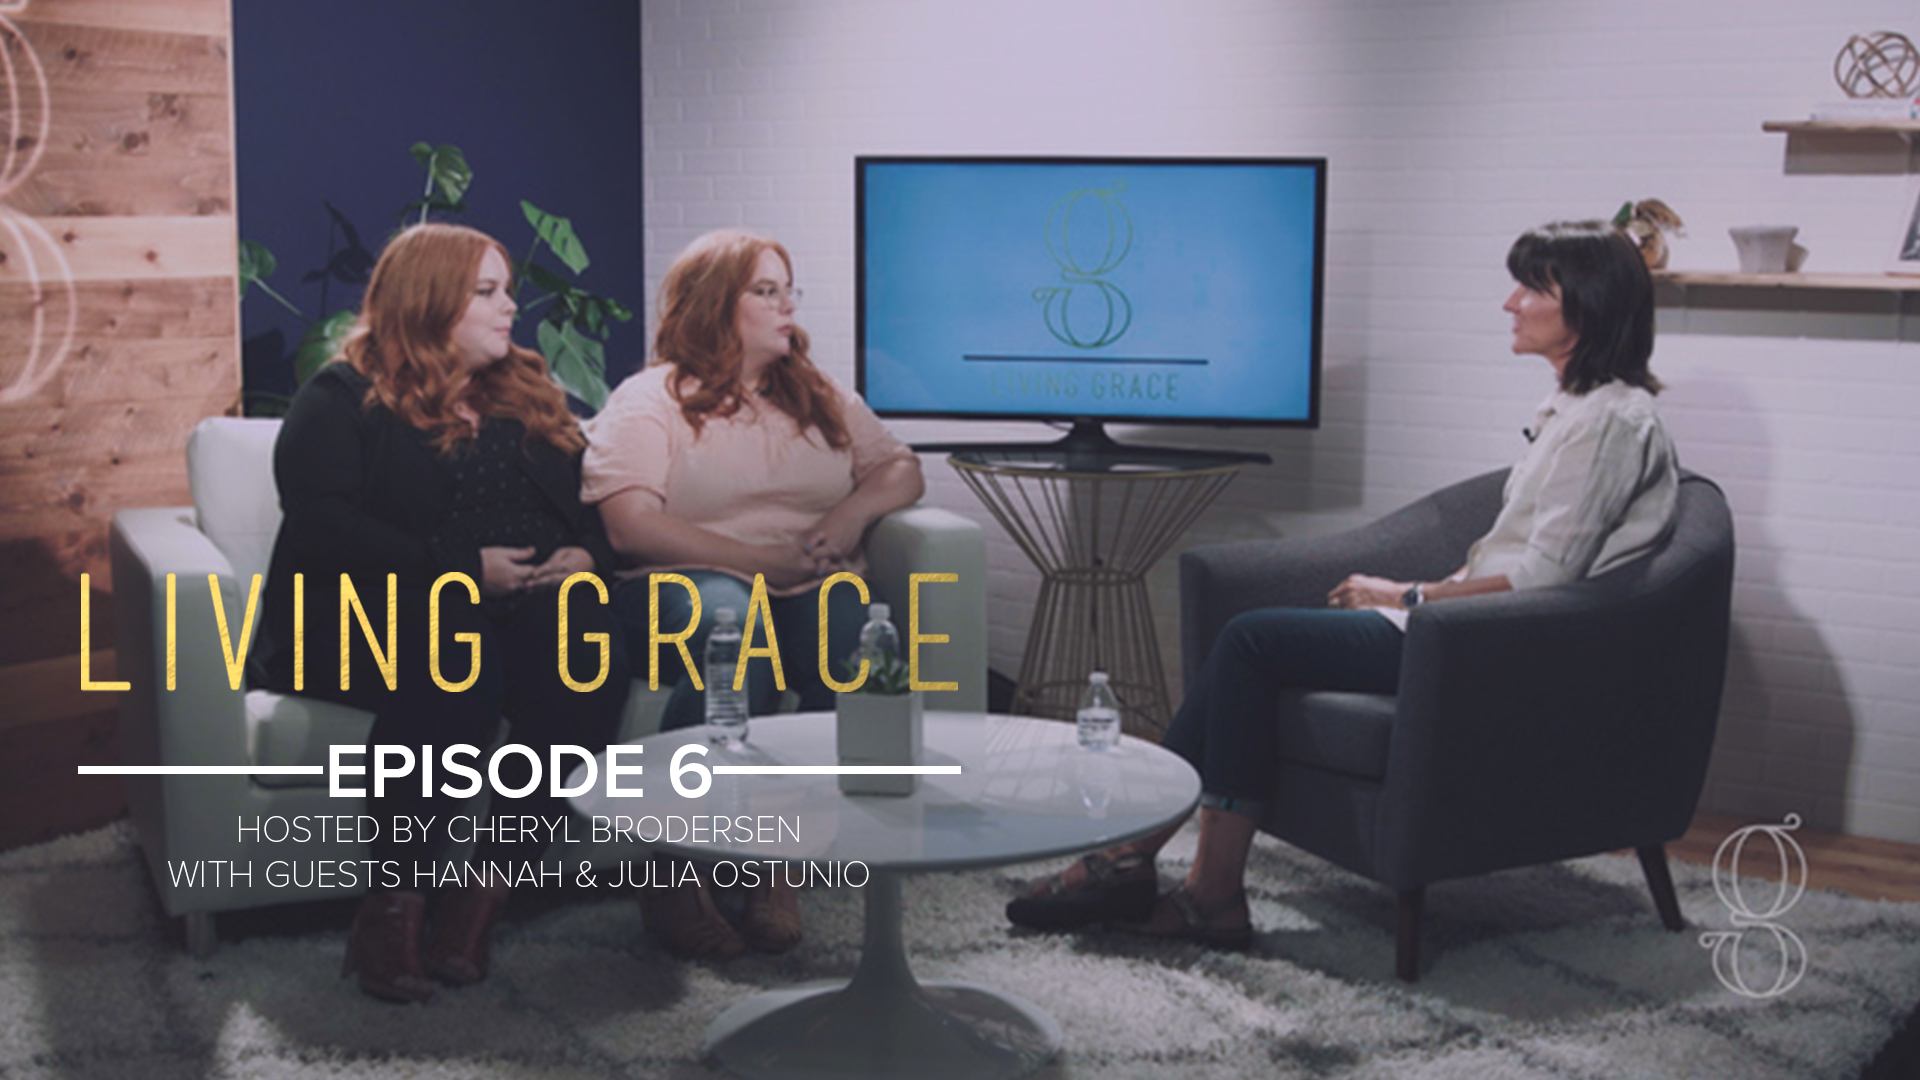 Living Grace Episode 6 - Interview with Hannah and Julia Ostunio